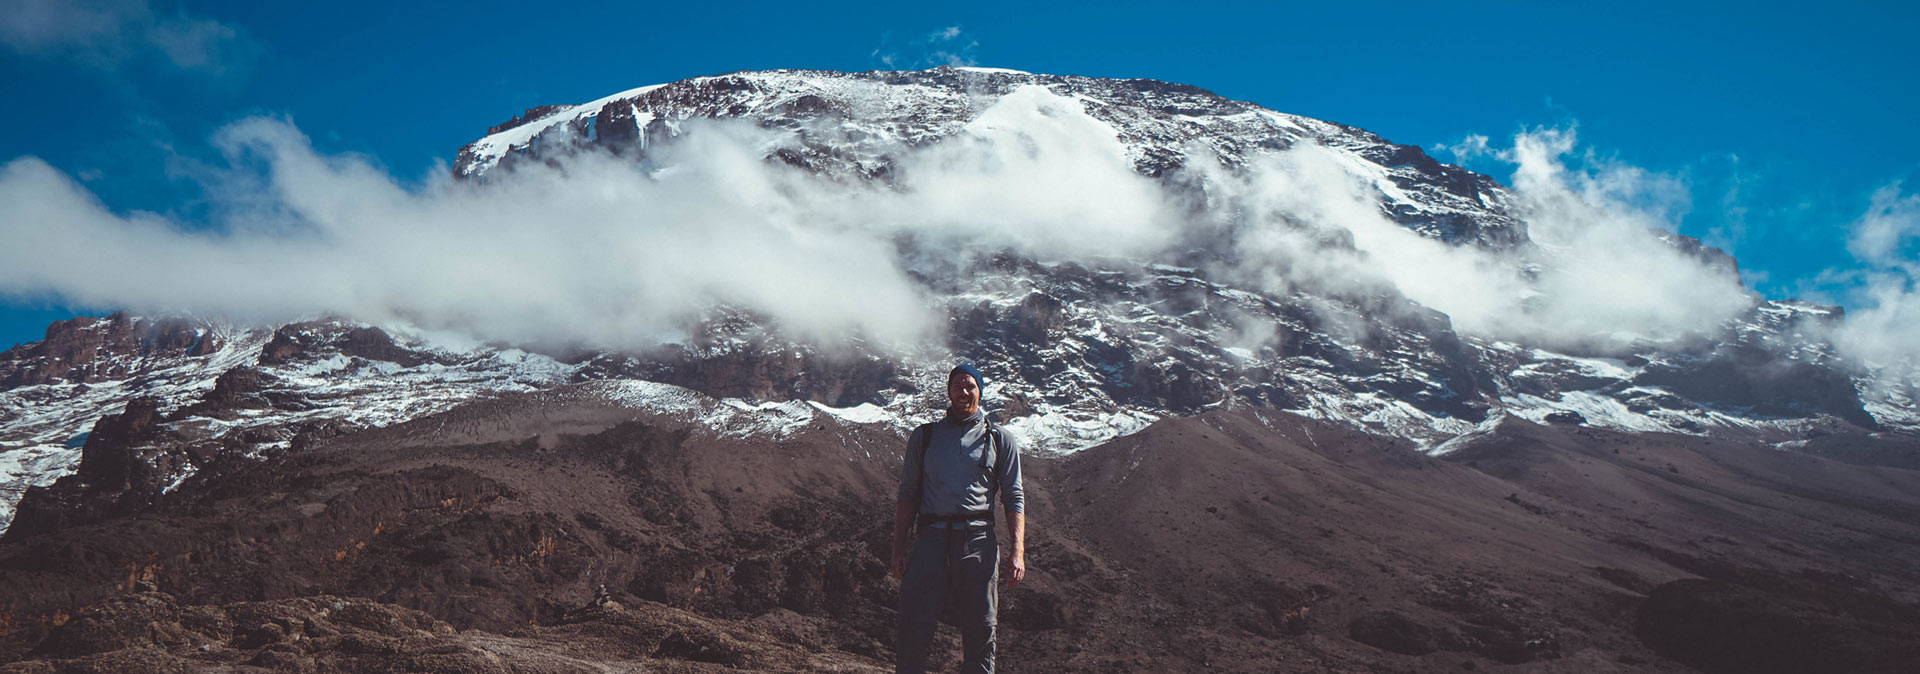 What Type of Insurance is needed to climb Mount Kilimanjaro?